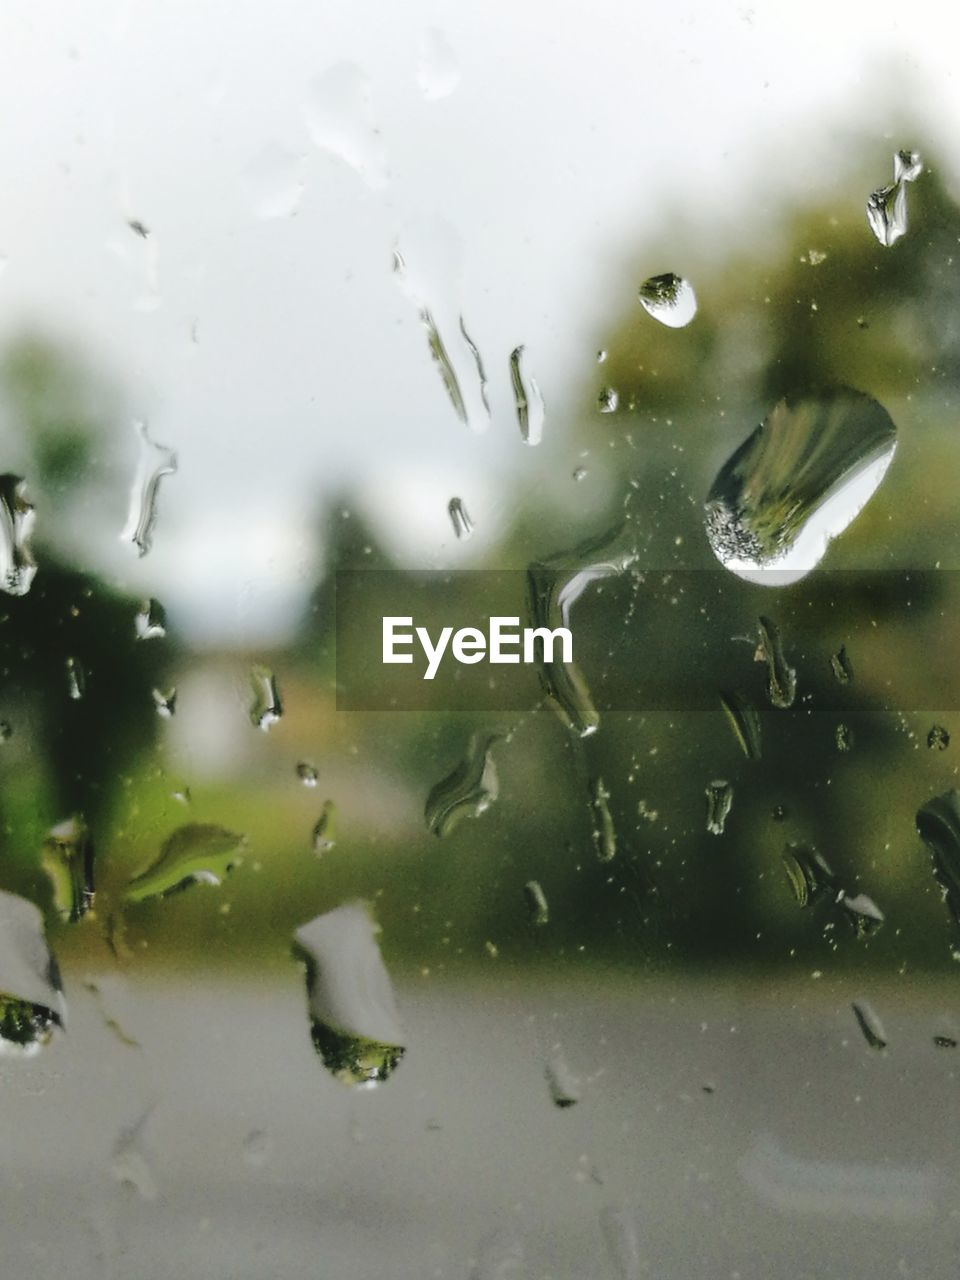 window, water, drop, wet, no people, full frame, close-up, raindrop, backgrounds, day, indoors, nature, freshness